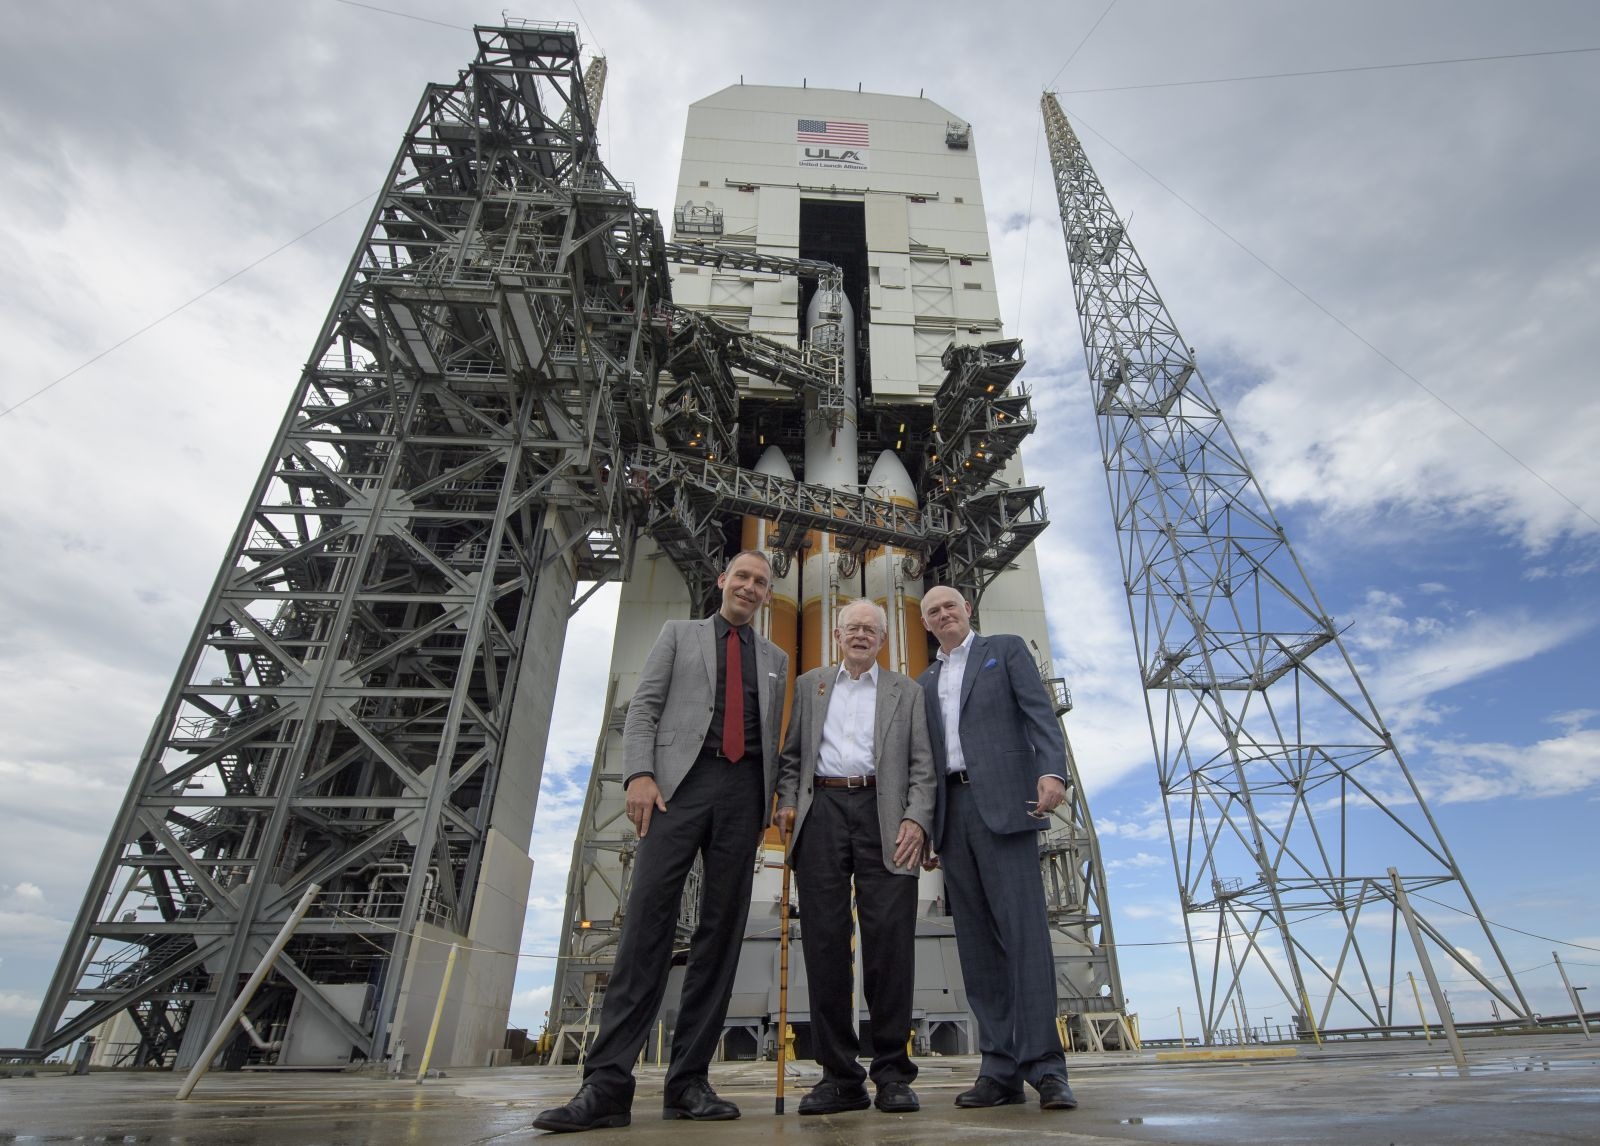 NASA Associate Administrator for the Science Mission Directorate Thomas Zurbuchen, left, American solar astrophysicist, and professor emeritus at the University of Chicago, Eugene Parker, center, and President and Chief Executive Officer for United Launch Alliance Tony Bruno pose for a group photo in front of the ULA Delta IV Heavy rocket with NASA's Parker Solar onboard, Friday, Aug. 10, 2018, Launch Complex 37 at Cape Canaveral Air Force Station, Florida. This is the first NASA mission that has been named for a living individual. Parker Solar Probe is humanity's first-ever mission into a part of the Sun's atmosphere called the corona. Here it will directly explore solar processes that are key to understanding and forecasting space weather events that can impact life on Earth. Photo Credit: Bill / Ingalls